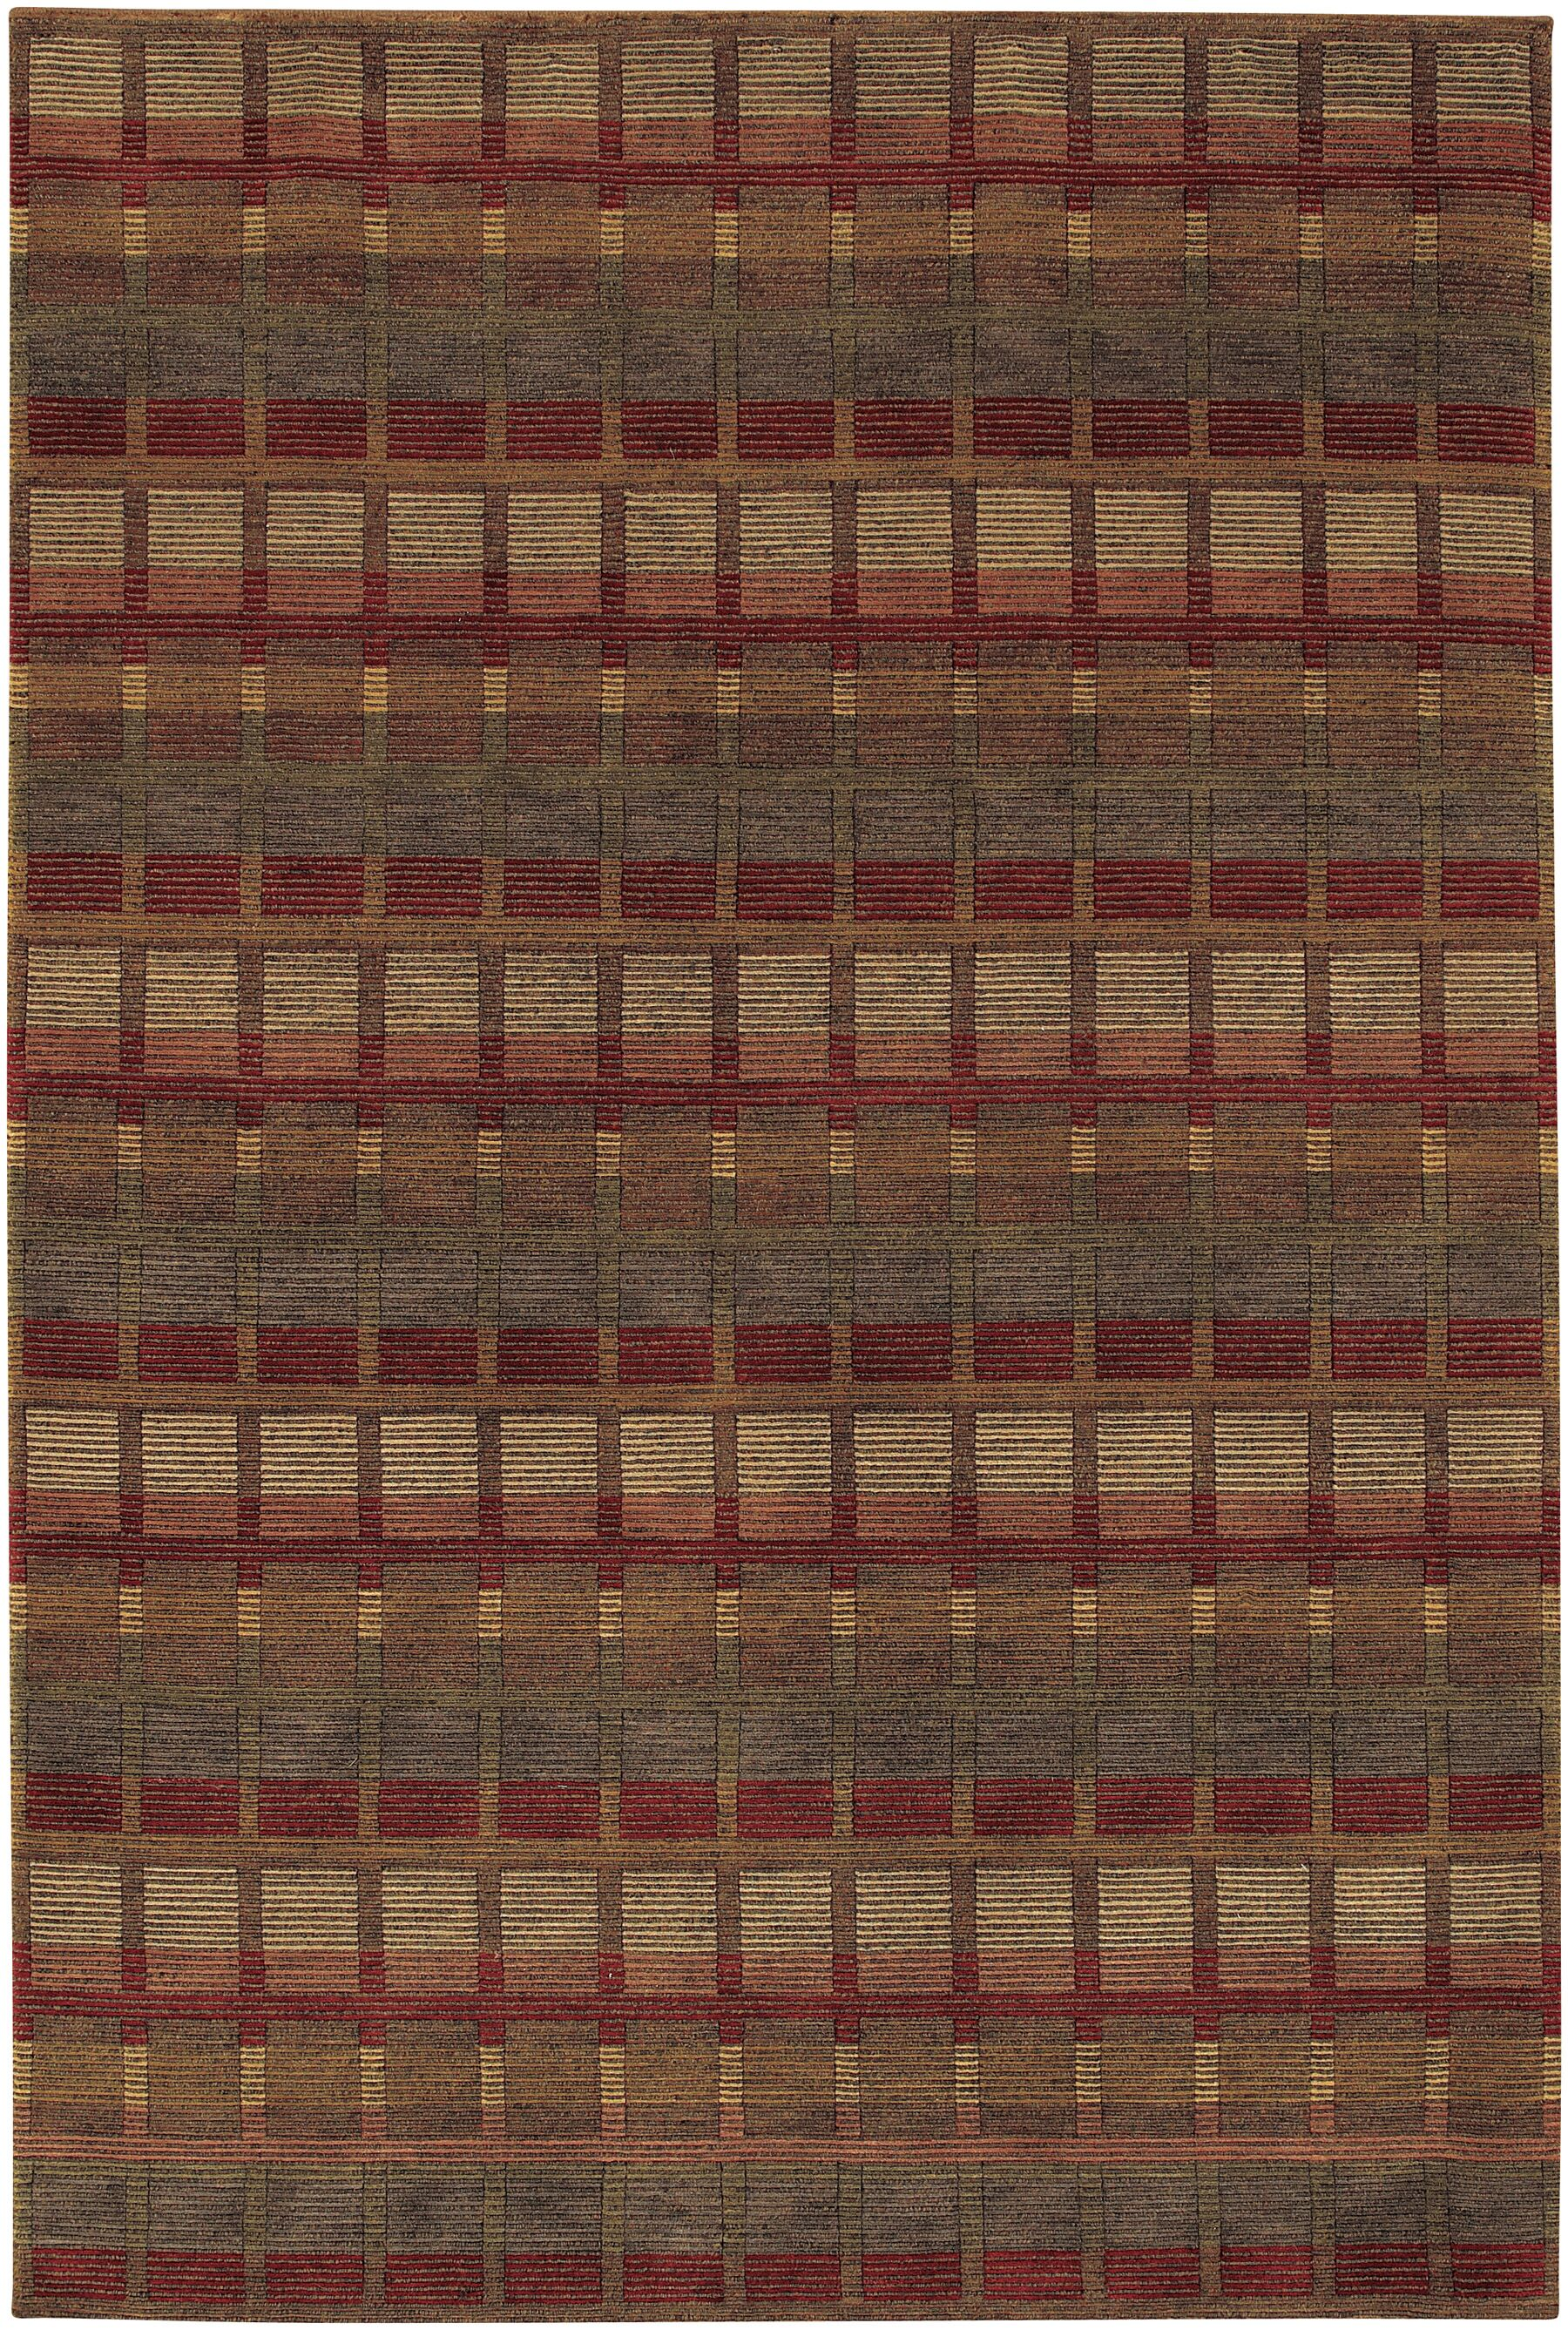 Sammons Hand-Knotted Gray/Red Area Rug Rug Size: Rectangle 9'6